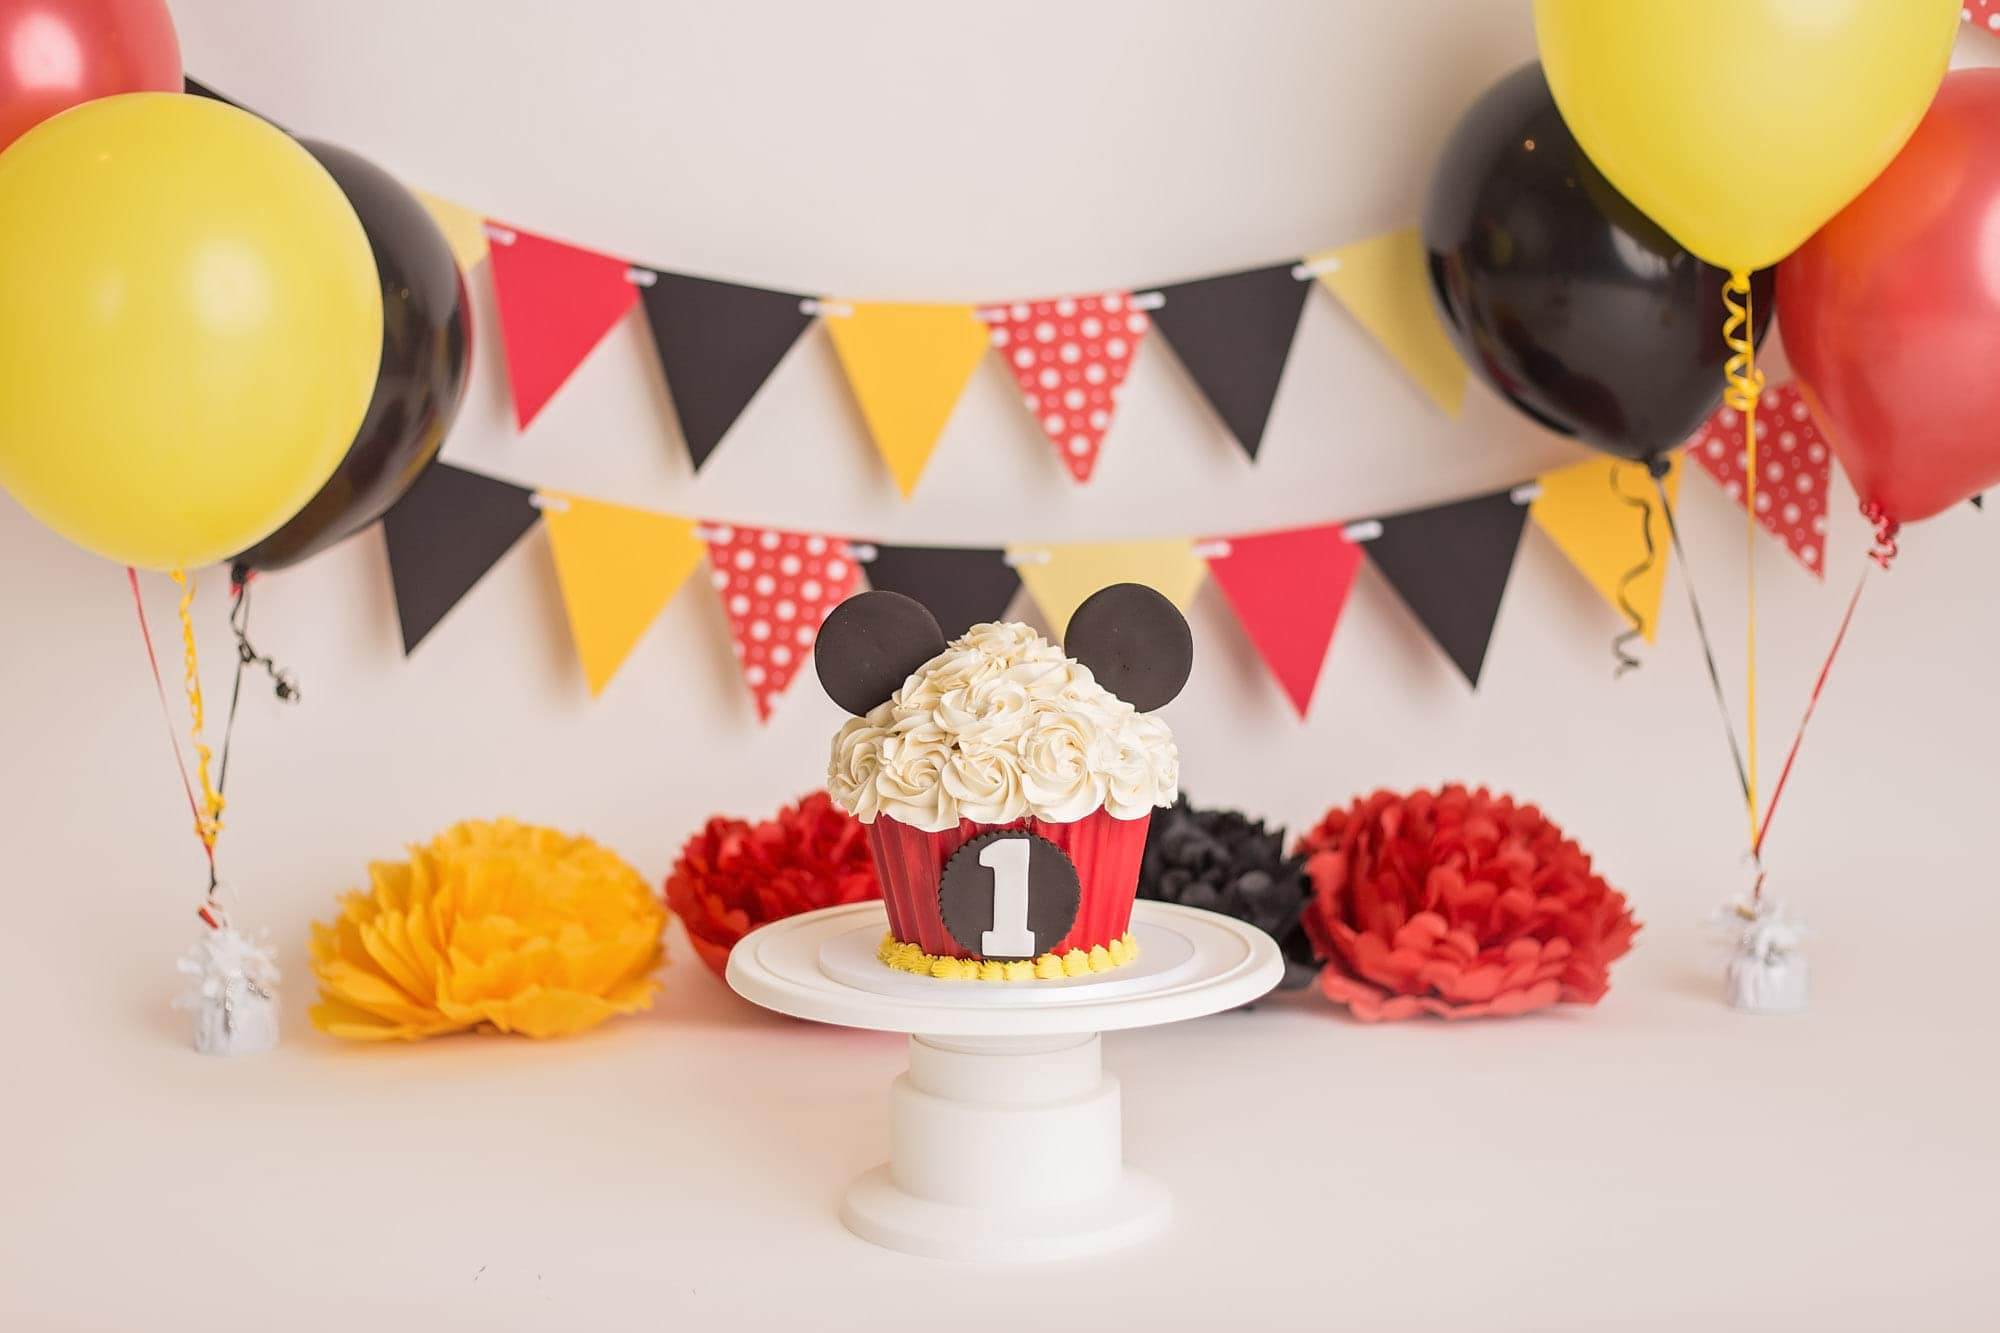 props and setup for a mickey mouse cake smash photo session